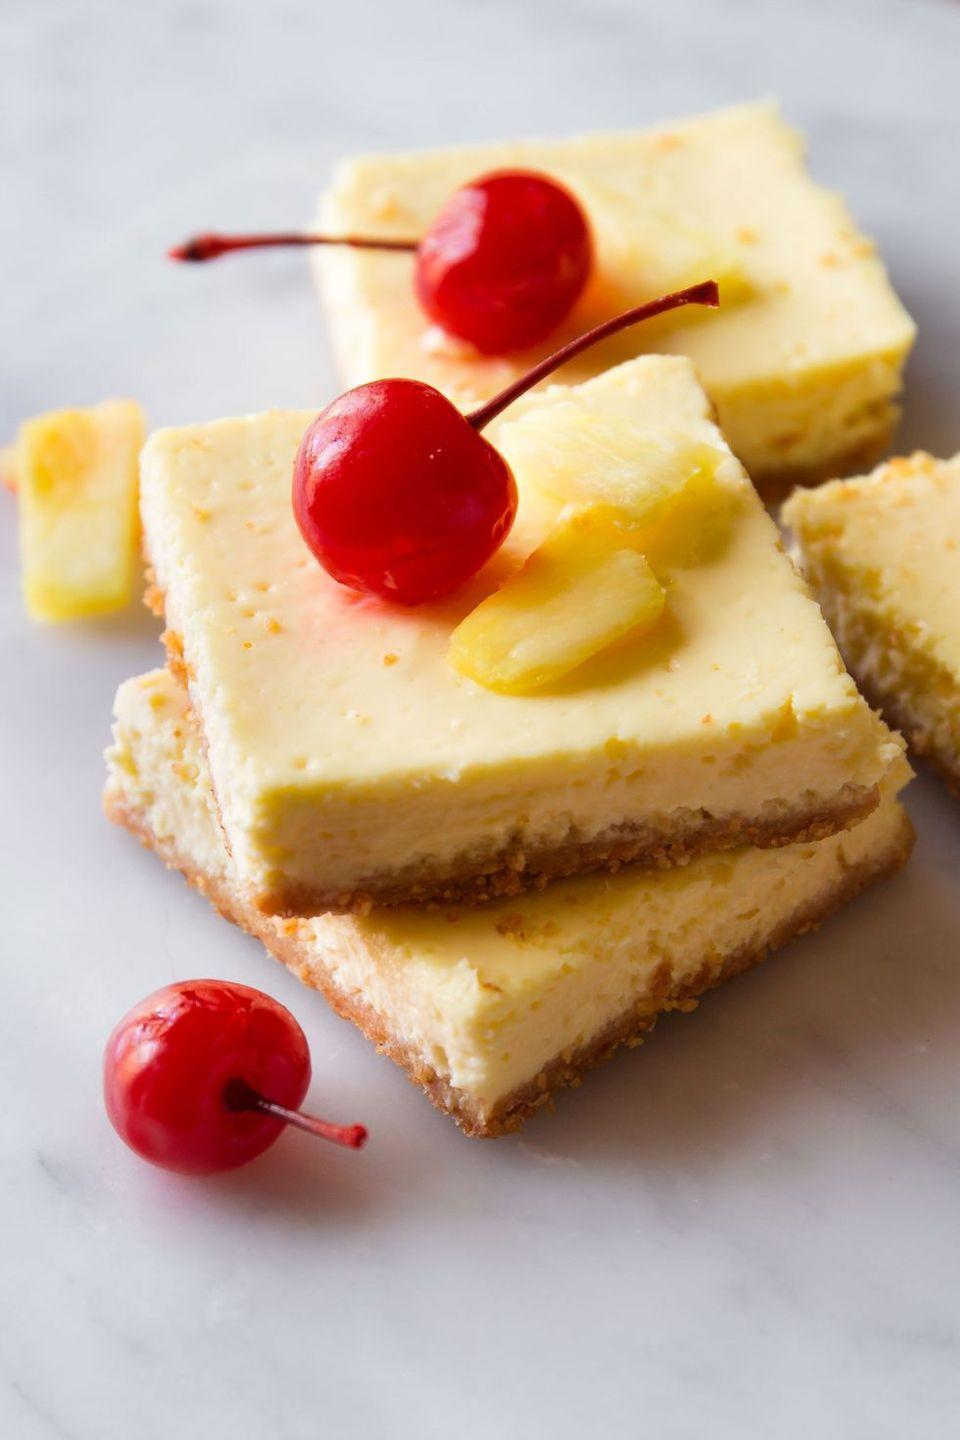 """<p>Transport yourself to the tropics with these lightened-up cheesecake bars.</p><p>Get the <a href=""""https://www.delish.com/uk/cooking/recipes/a34709288/skinny-pineapple-cheesecake-bars-recipe/"""" rel=""""nofollow noopener"""" target=""""_blank"""" data-ylk=""""slk:Skinny Pineapple Cheesecake Bars"""" class=""""link rapid-noclick-resp"""">Skinny Pineapple Cheesecake Bars</a> recipe.</p>"""